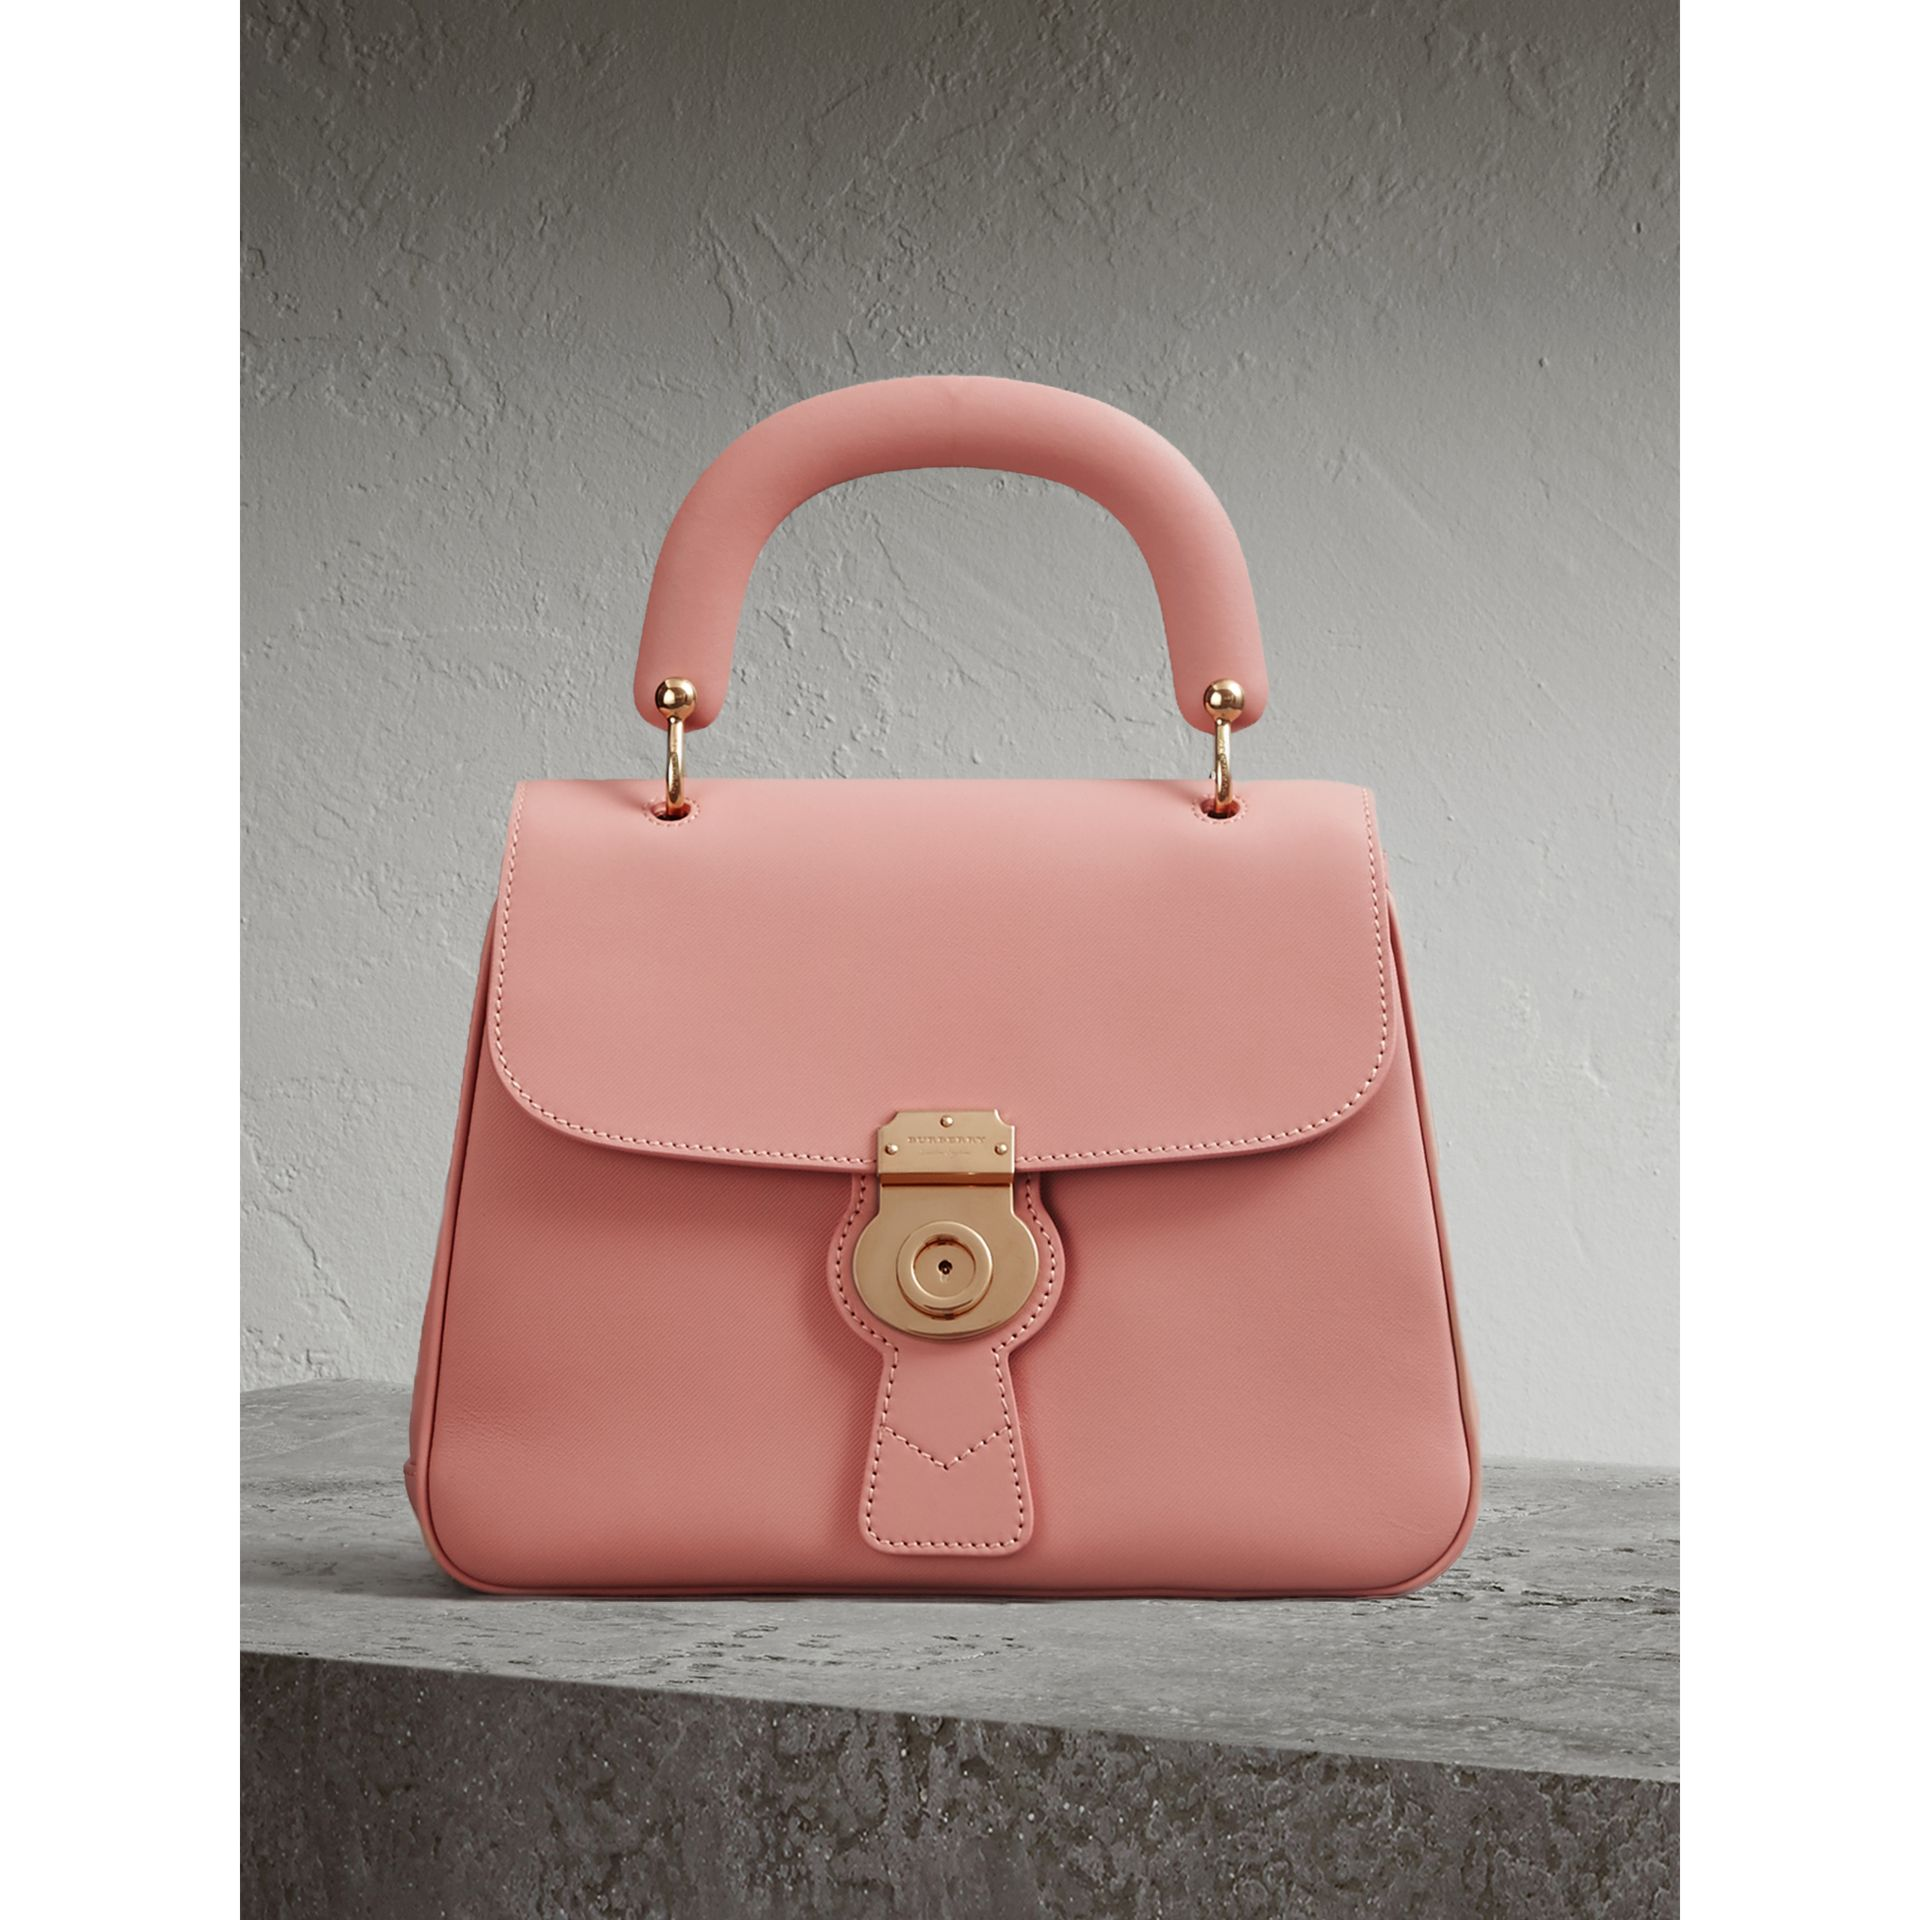 Burberry The Medium Dk88 Leather Top Handle Bag In Pink   ModeSens 11418eb2b8